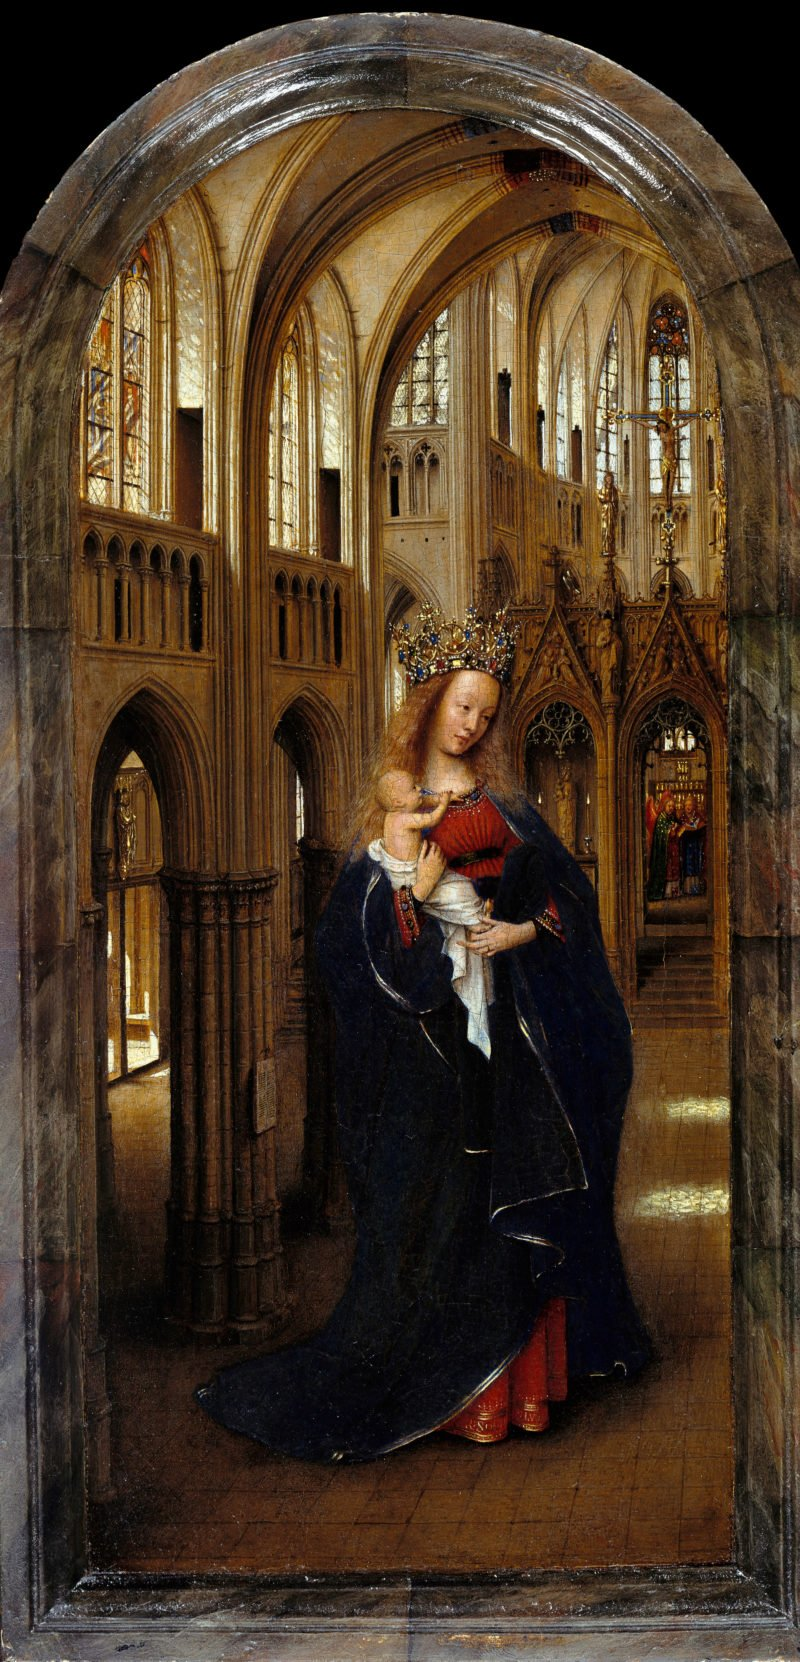 jan van eyck   the madonna in the church   google art project